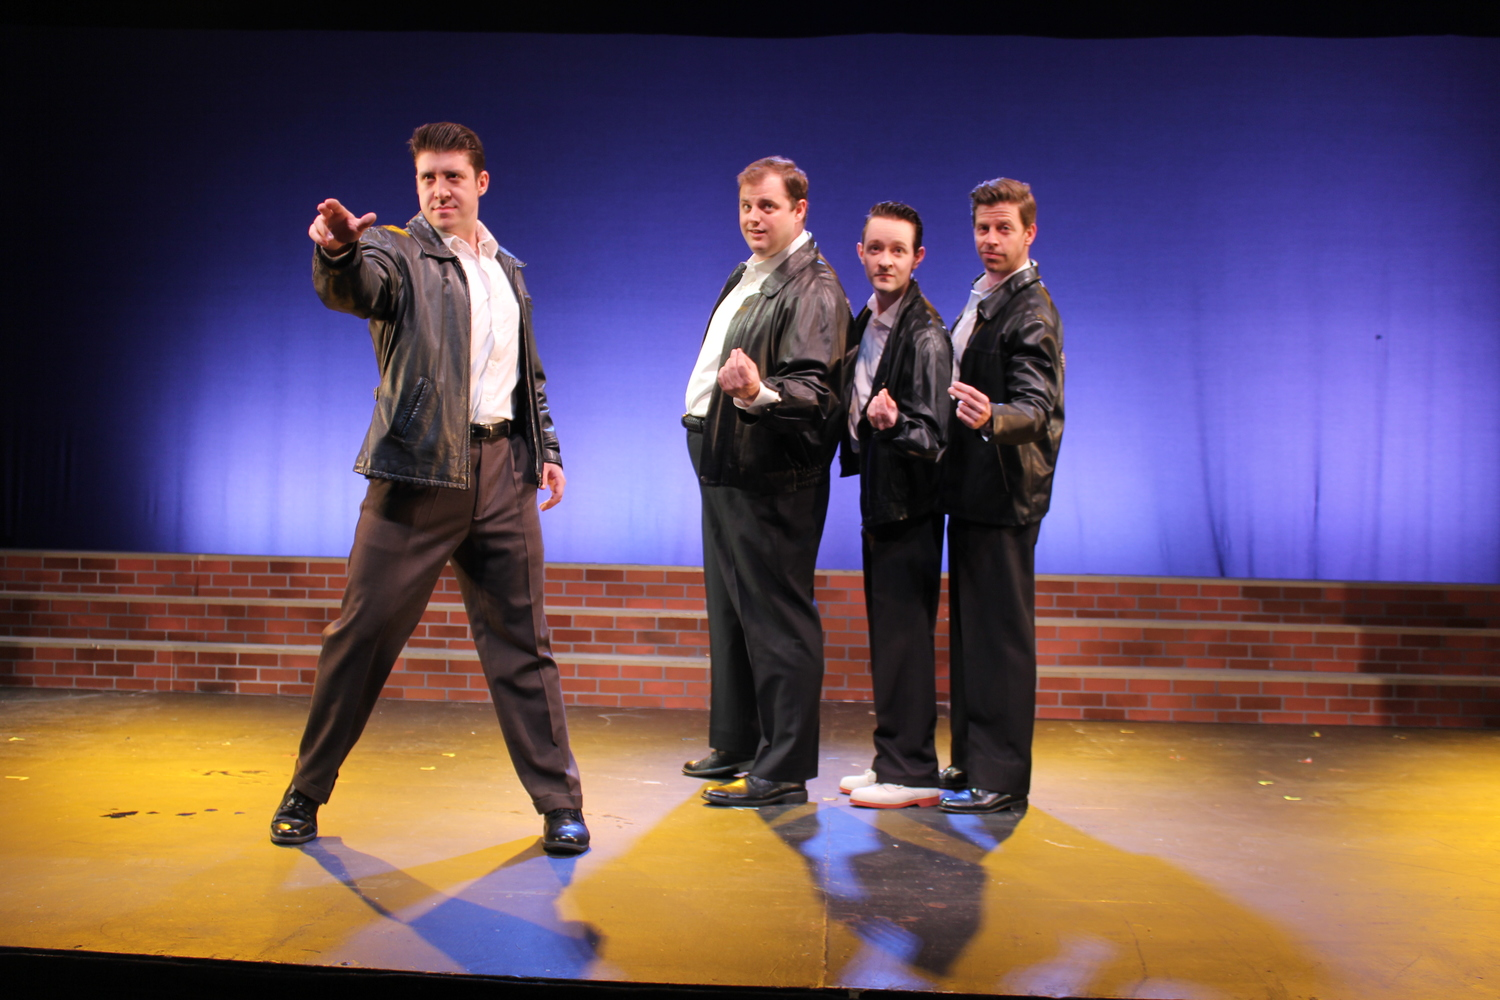 BWW Review: ROCK 'N' ROLL REDEMPTION at Seven Angels Theatre